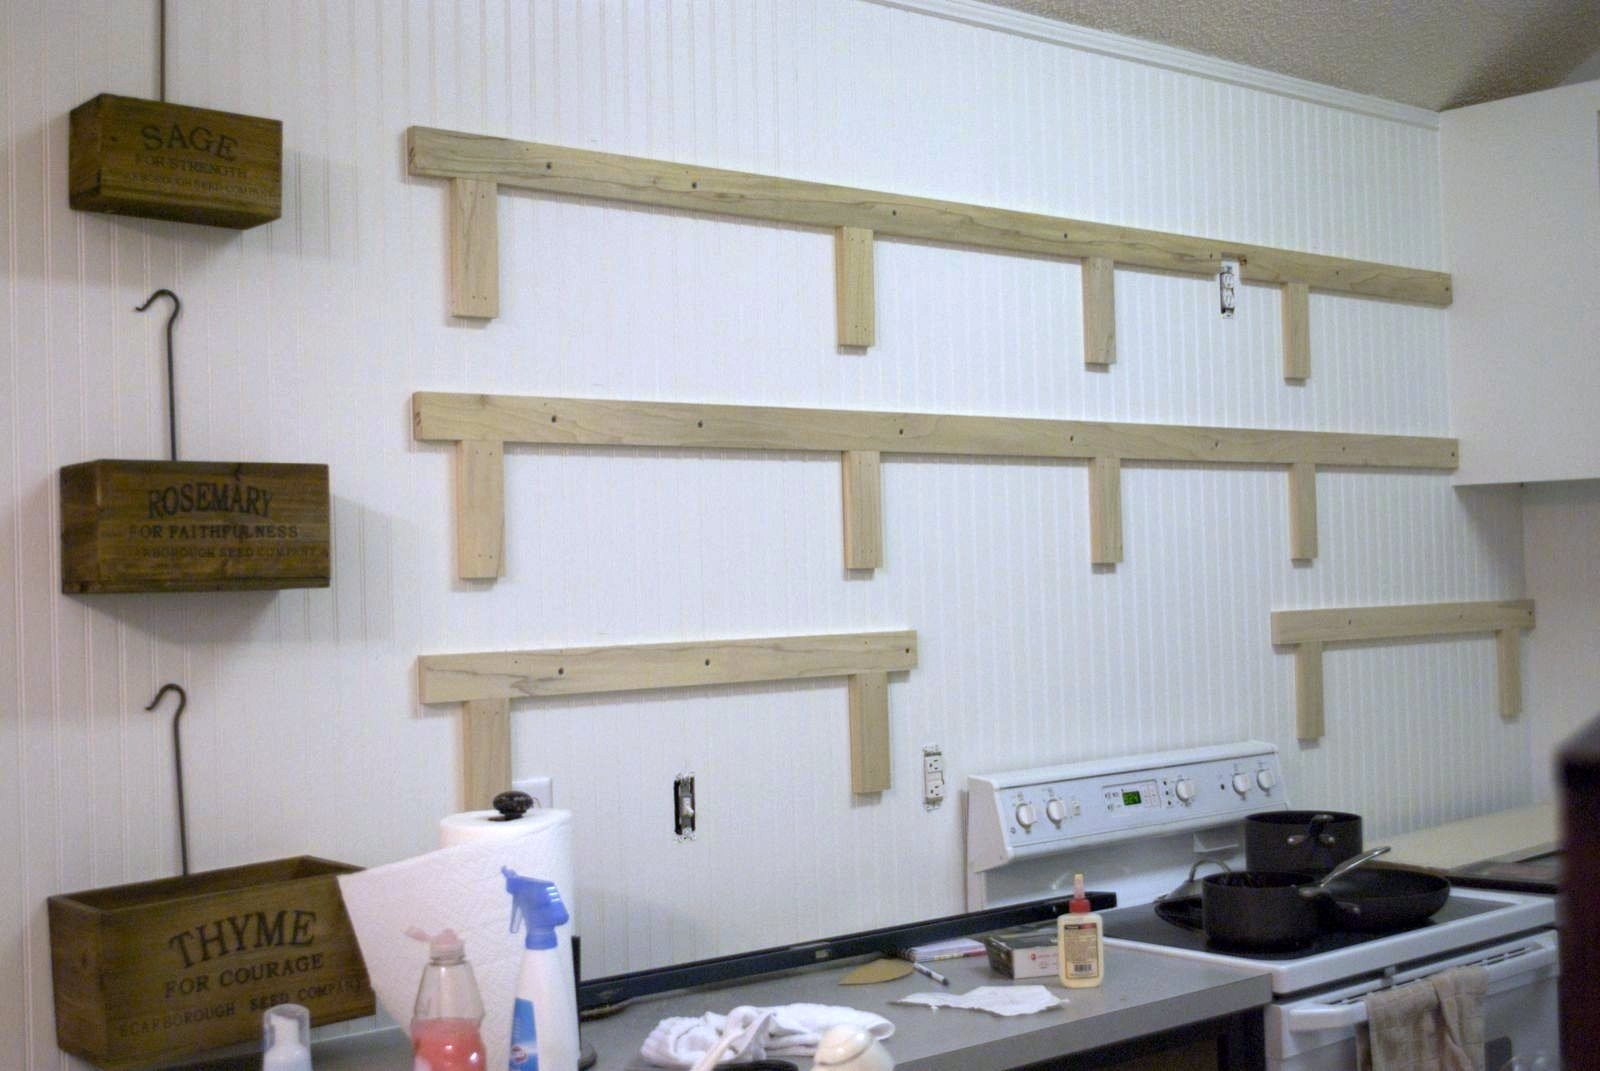 Hanging Kitchen Cabinets On Stud Wallshang kitchen cabinets without studs